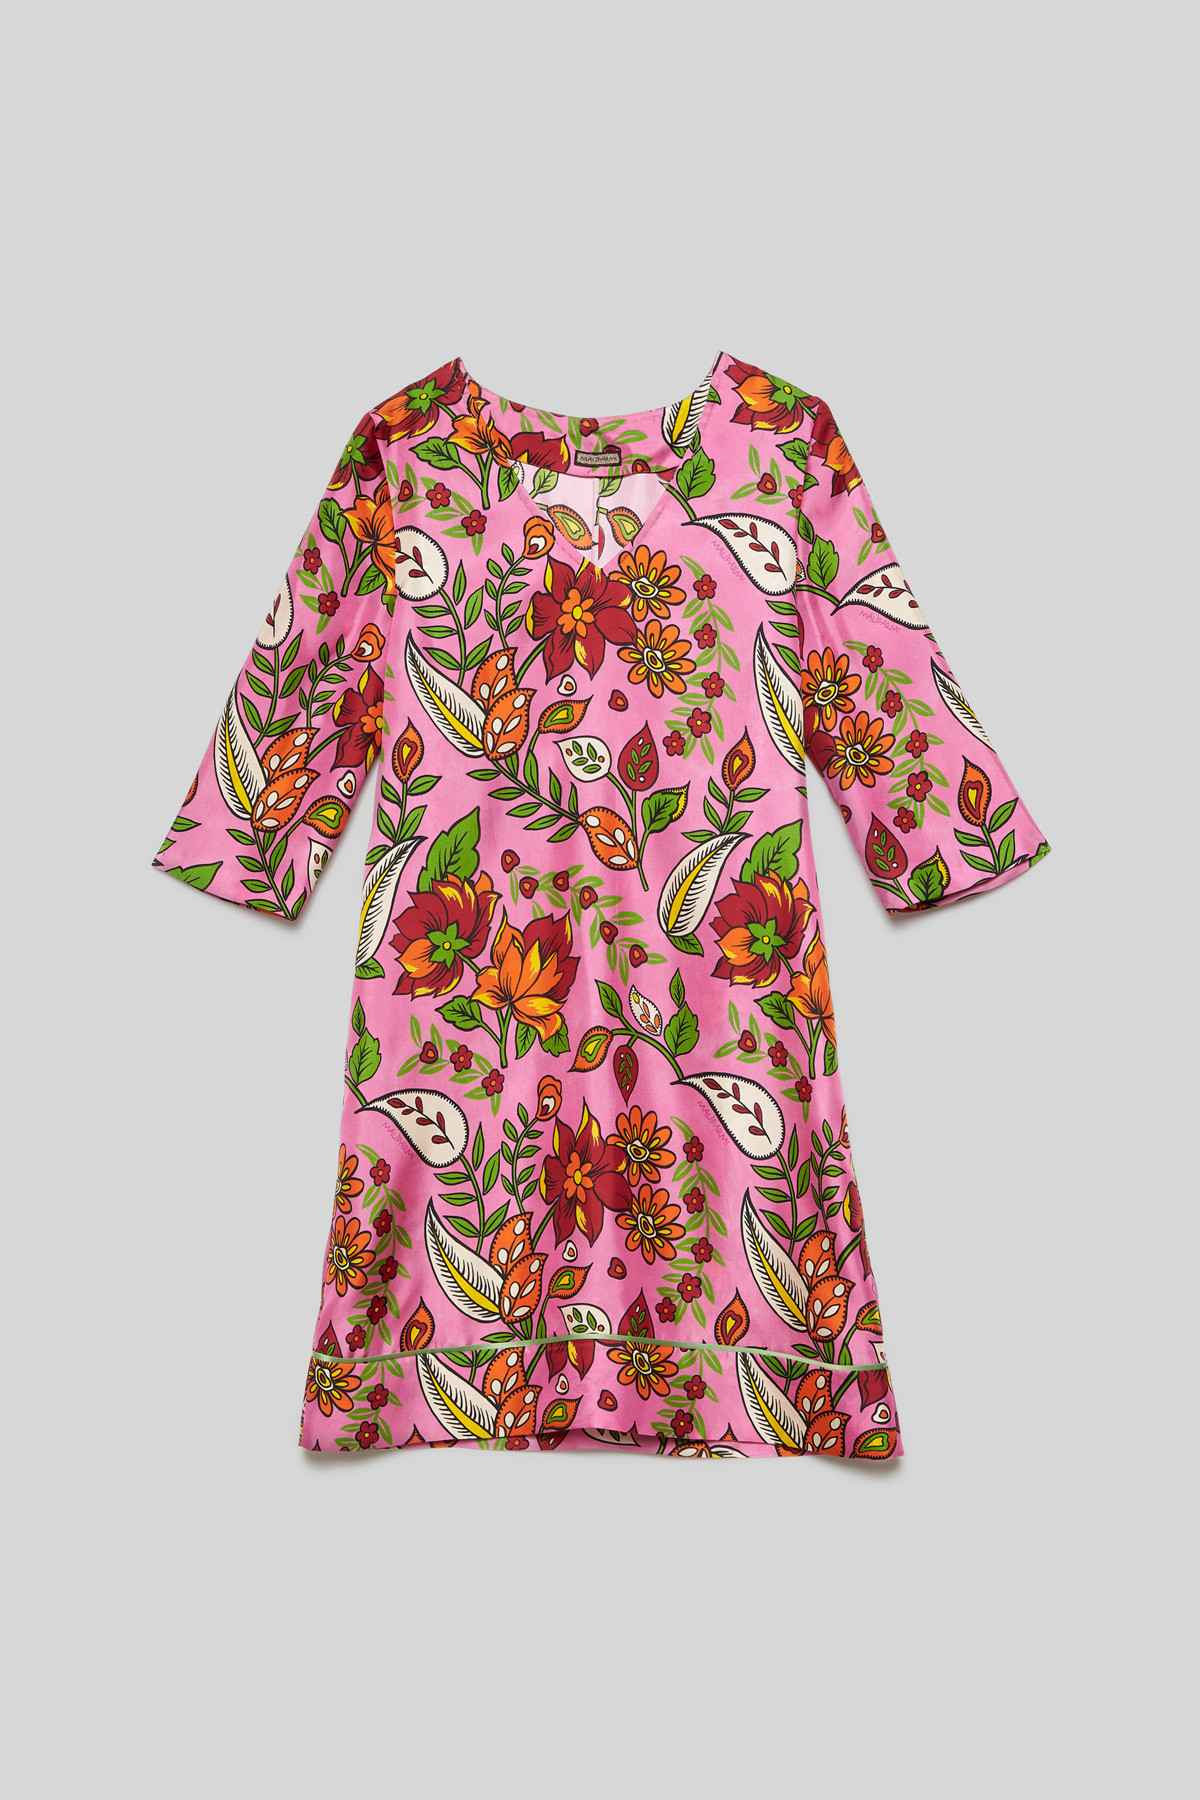 Women's Clothing Midi Collection Print Silk Dress with Pink Floral Pattern Maliparmi |  | JF645930091B3219